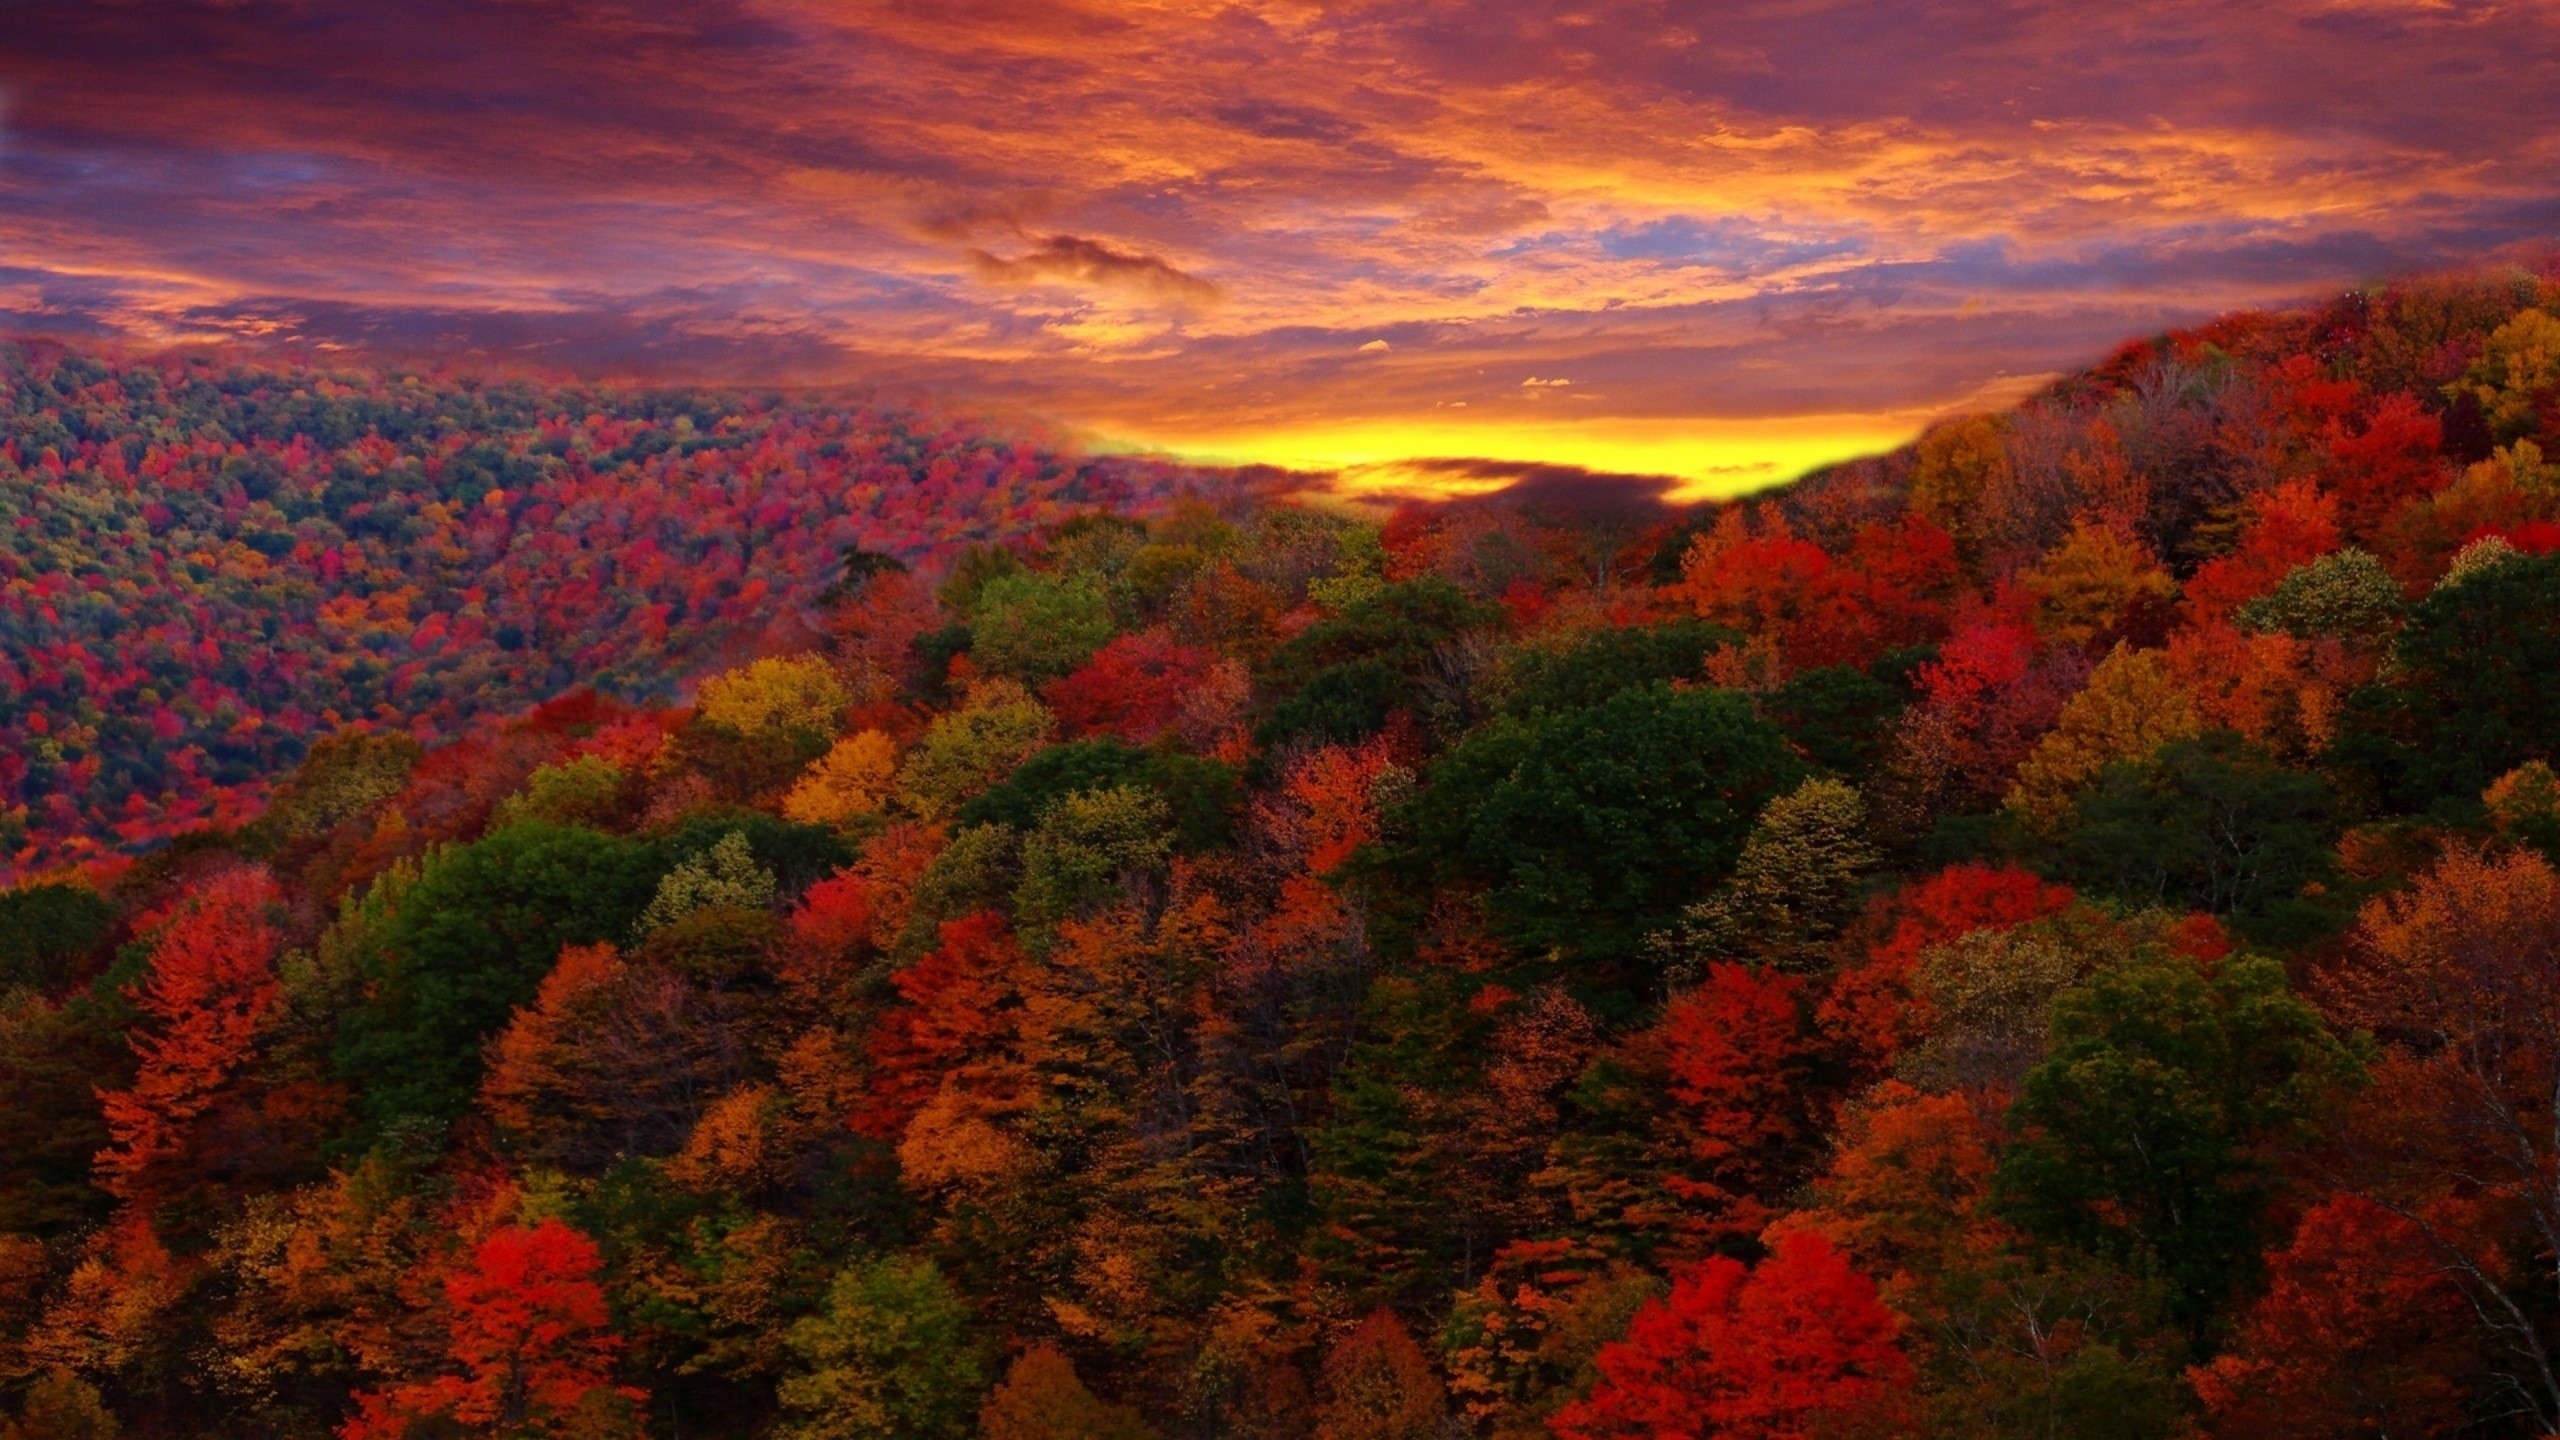 Wallpaper Toamna Incanta Privitorul Fall Season New England 2560x1440 Download Hd Wallpaper Wallpapertip